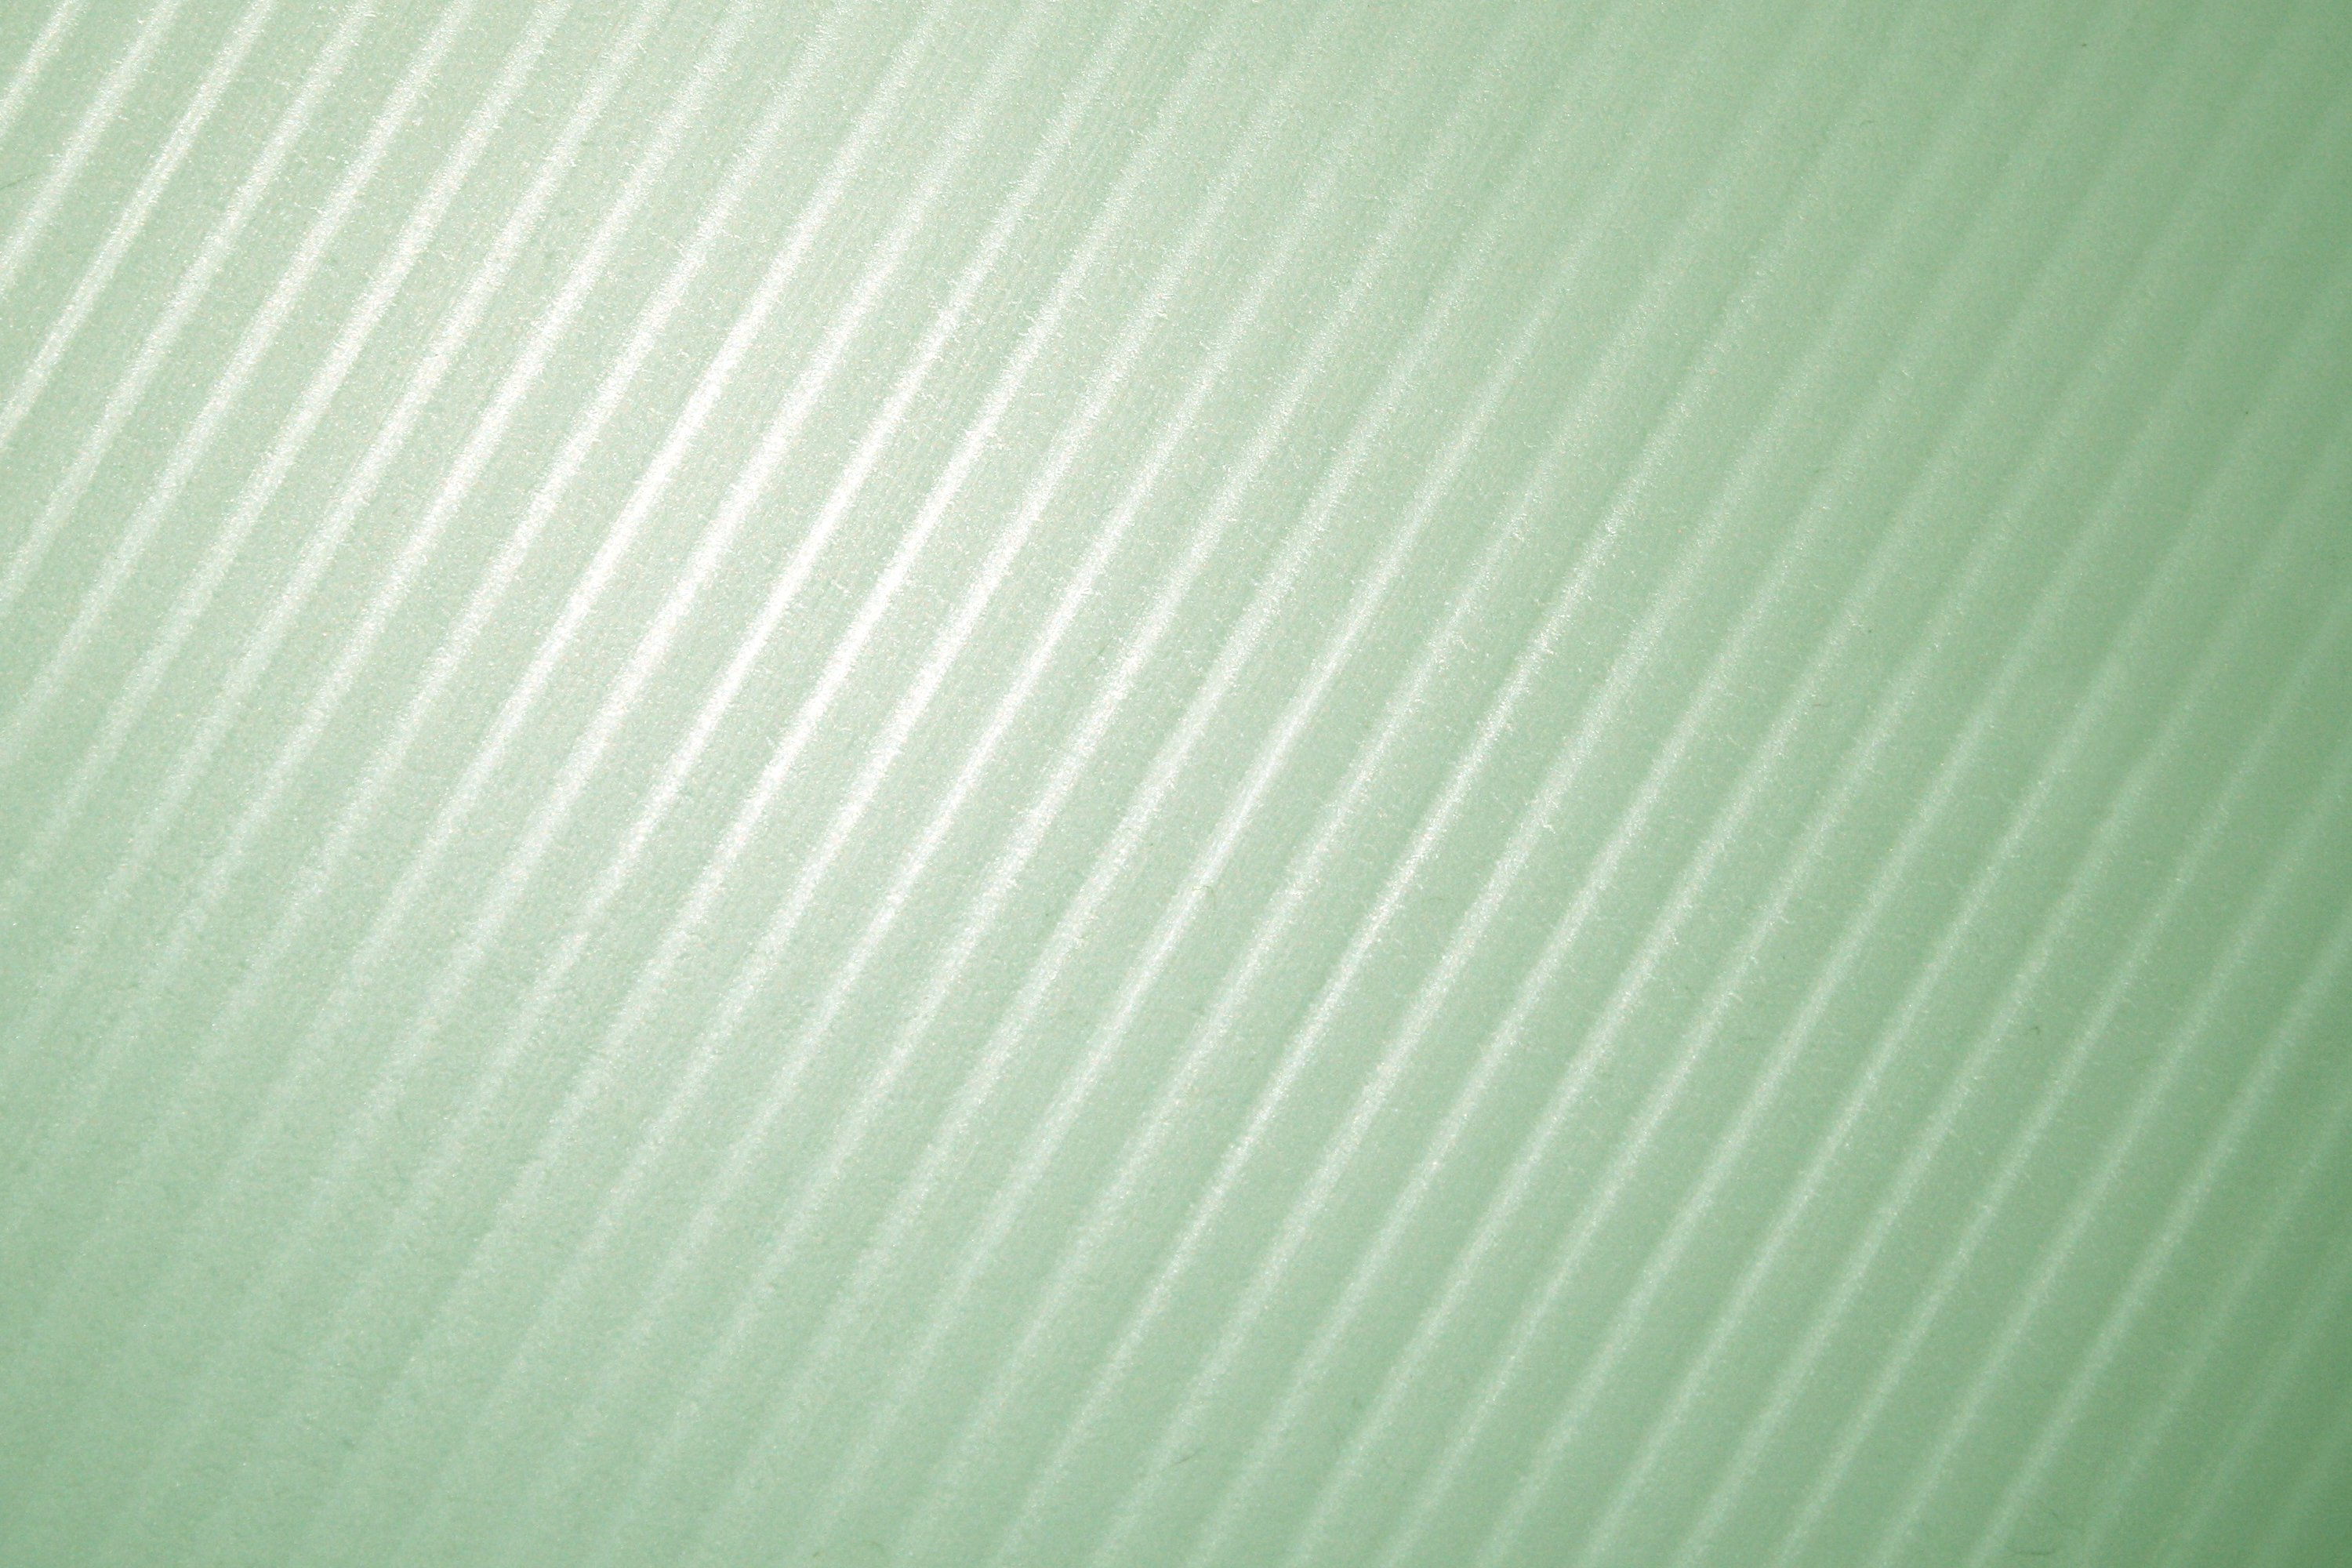 Off white diagonal striped plastic texture picture free photograph - Sage Green Diagonal Striped Plastic Texture